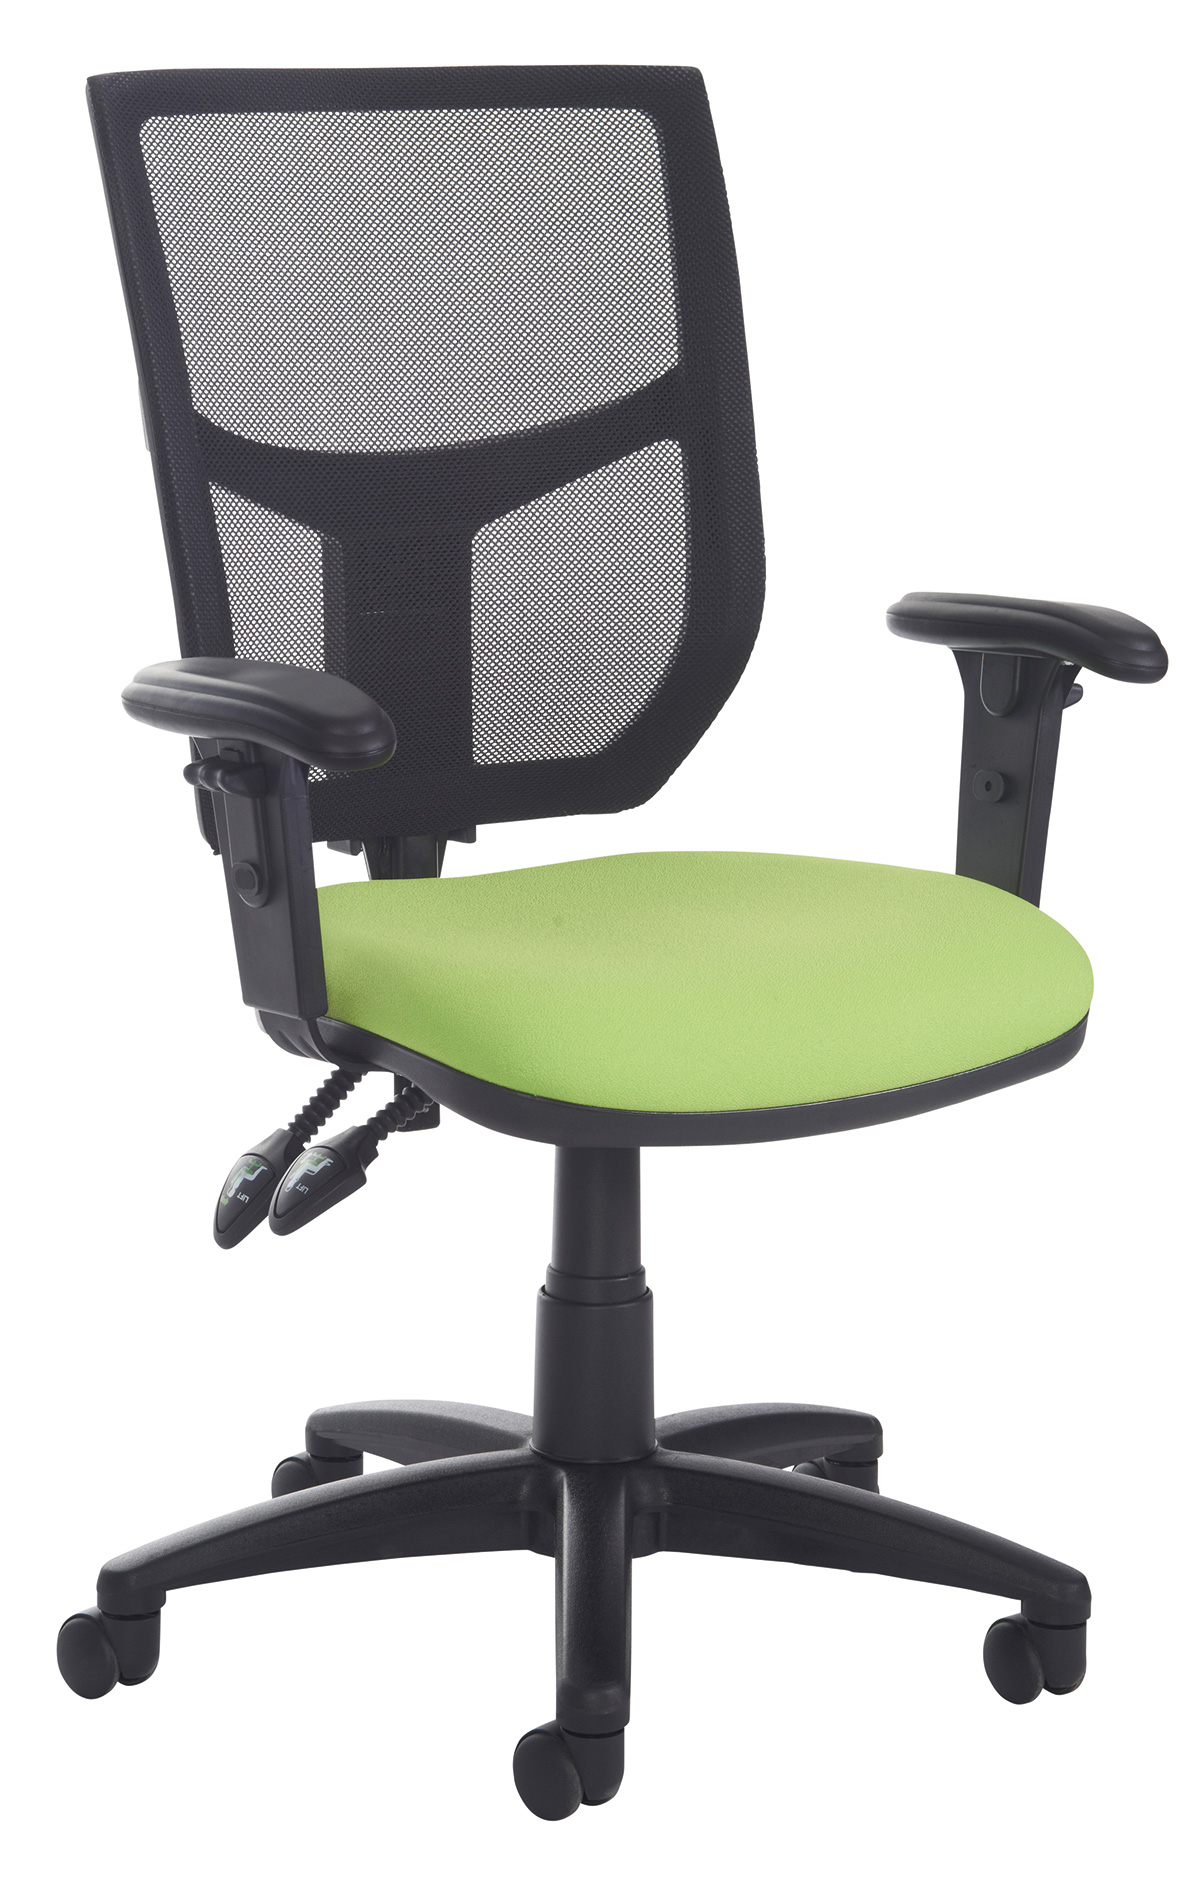 office chair mesh affordable chairs johannesburg altino choice of colours